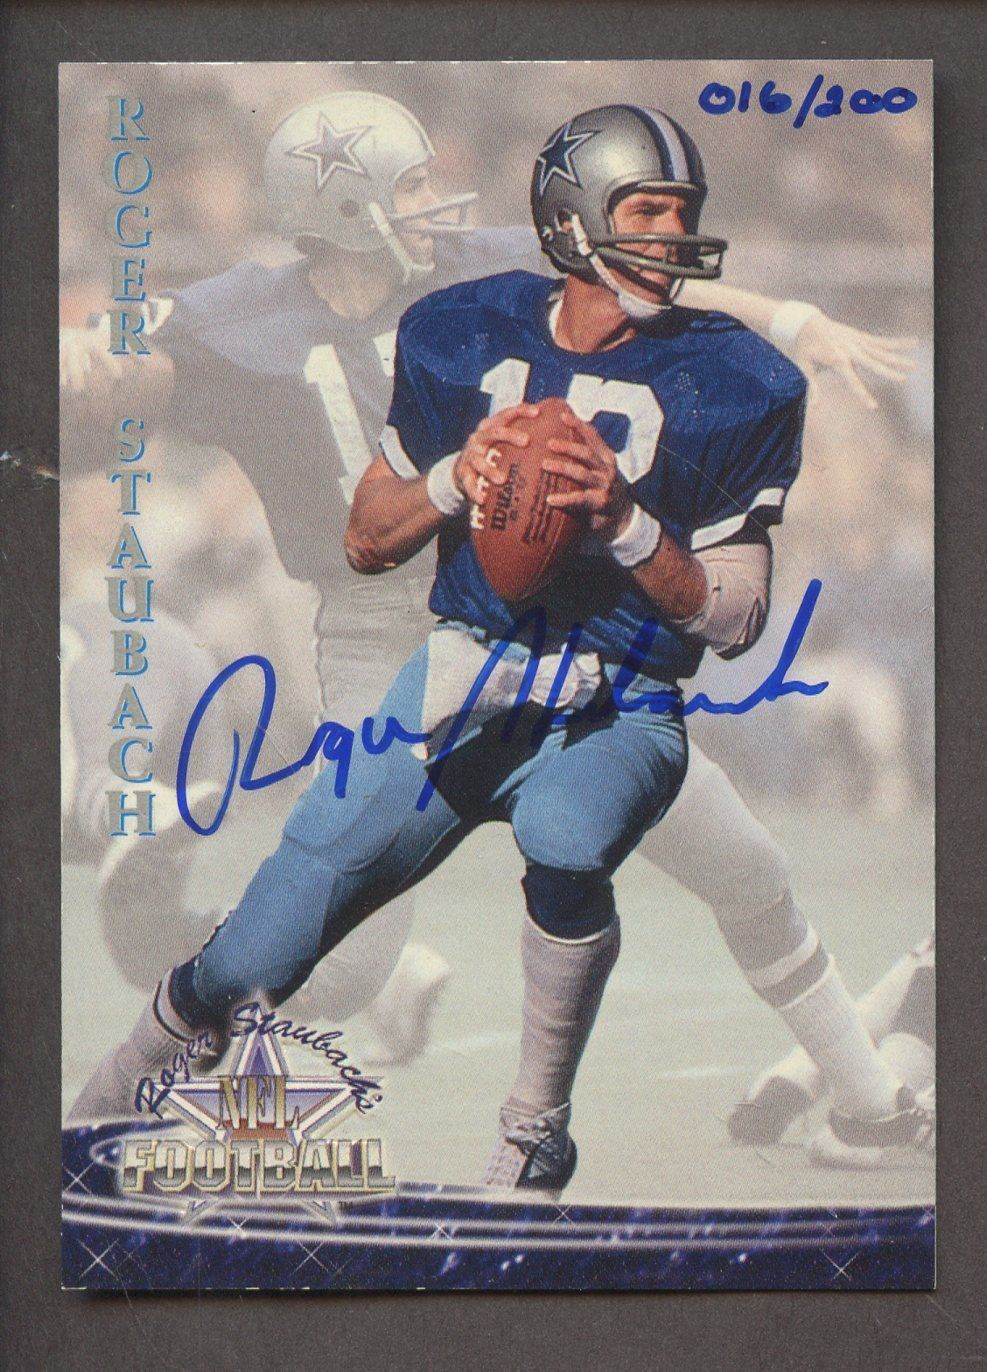 2000 Upper Deck Legends #16 Roger Staubach Dallas Cowboys Fútbol Tarjeta